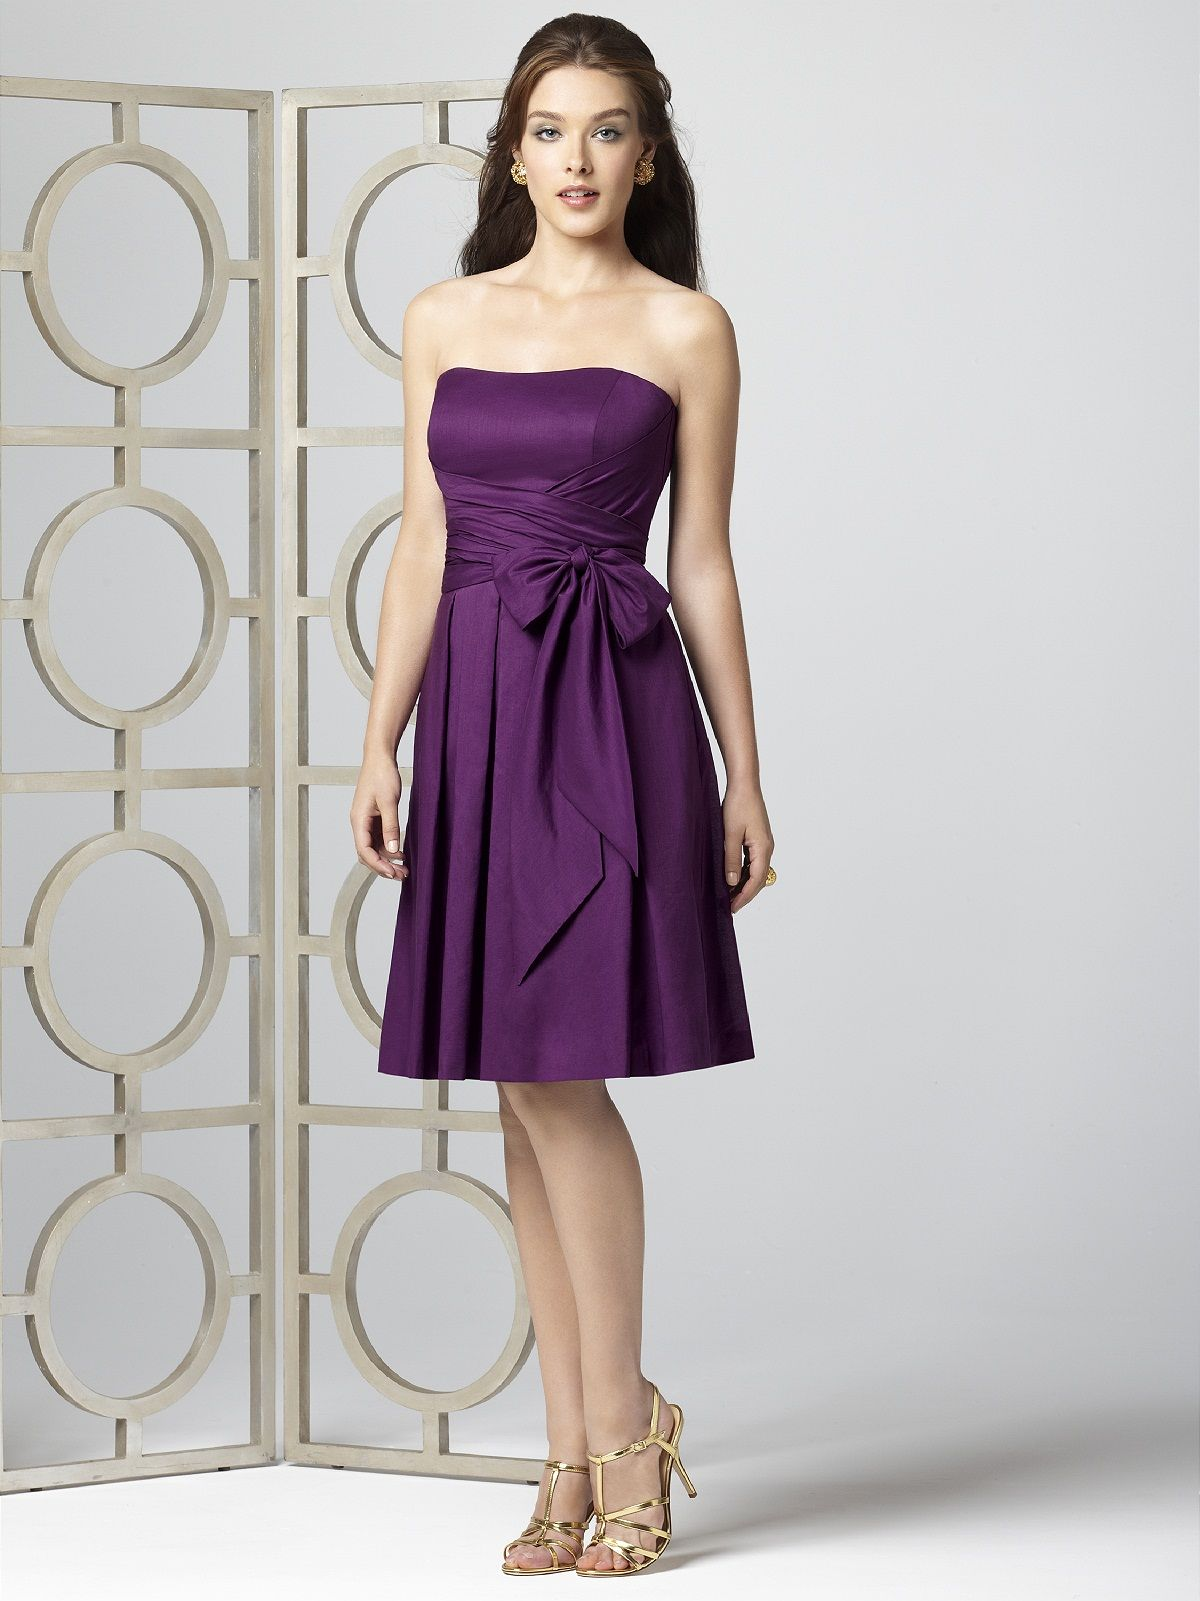 Exotic spring purple bridesmaid dresses cherry marry spring purple strapless bridesmaid dress ombrellifo Image collections